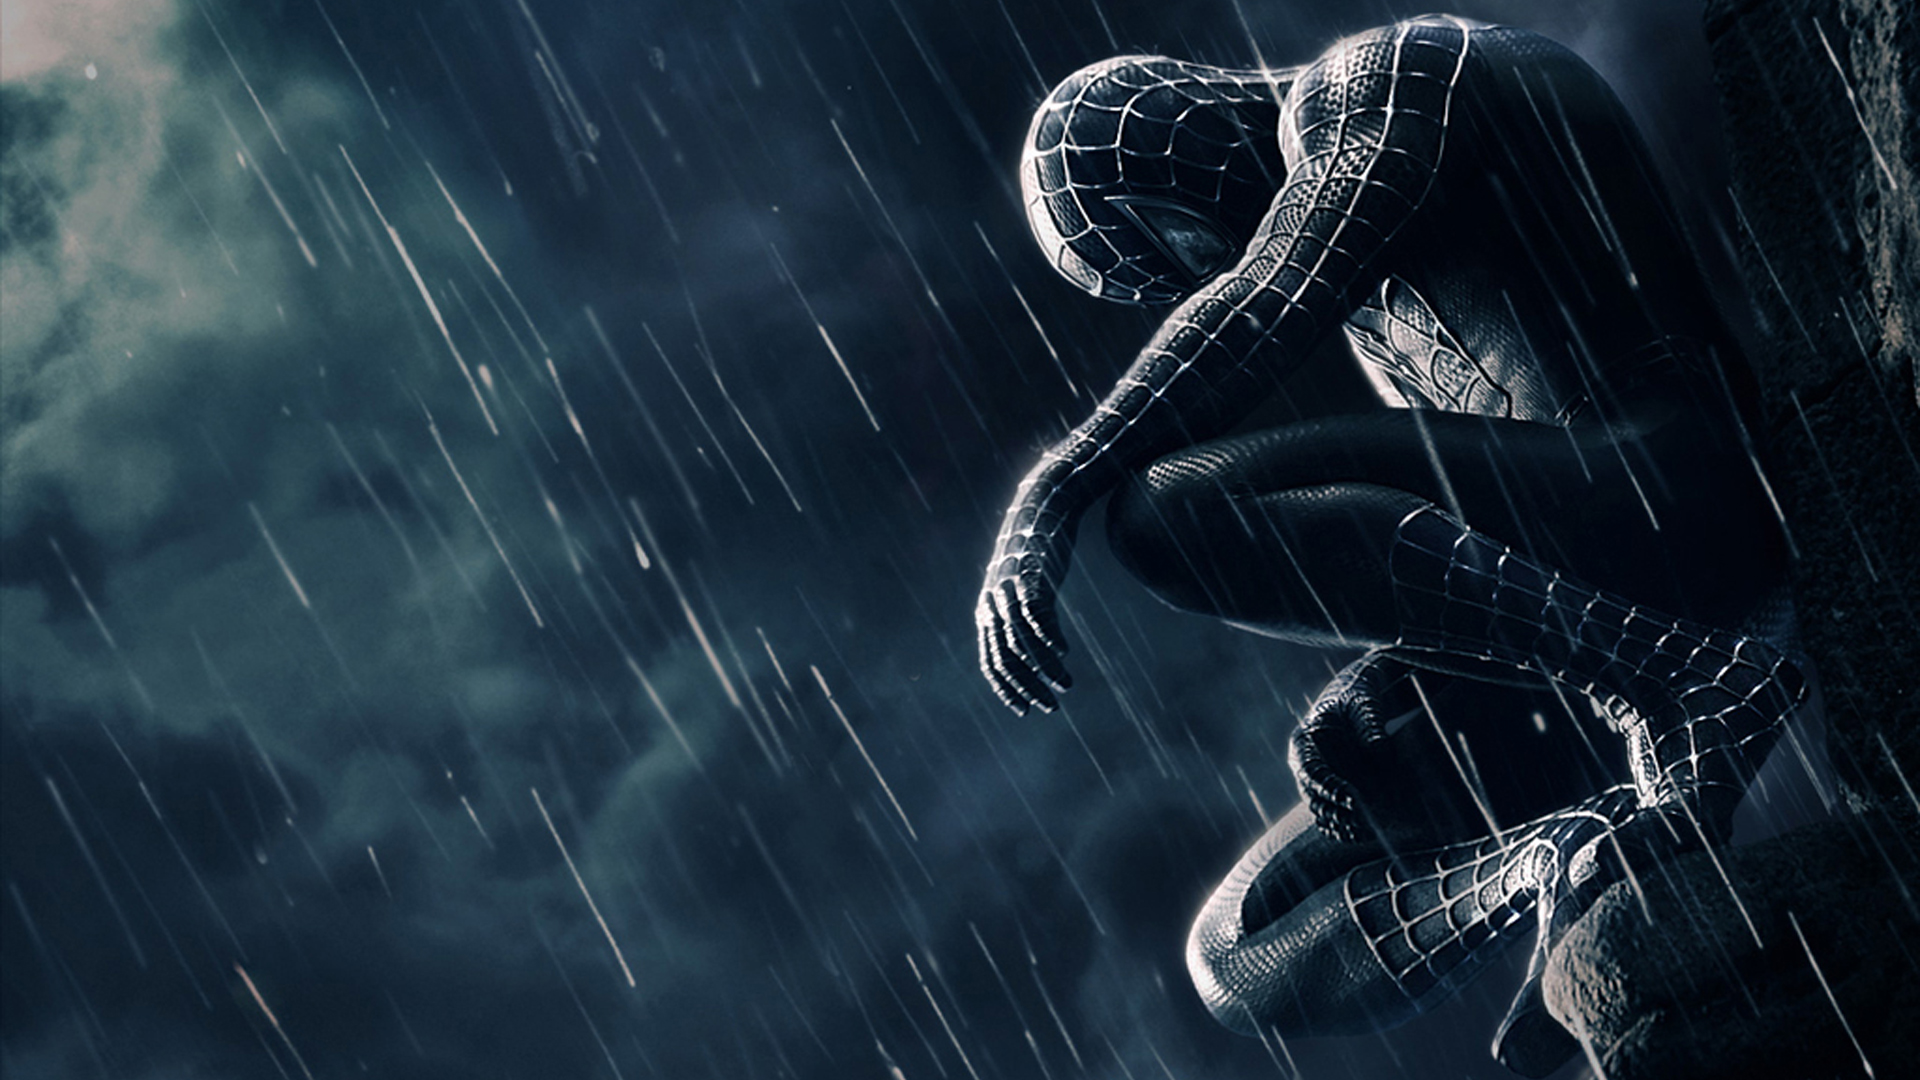 Spider-Man high quality wallpapers